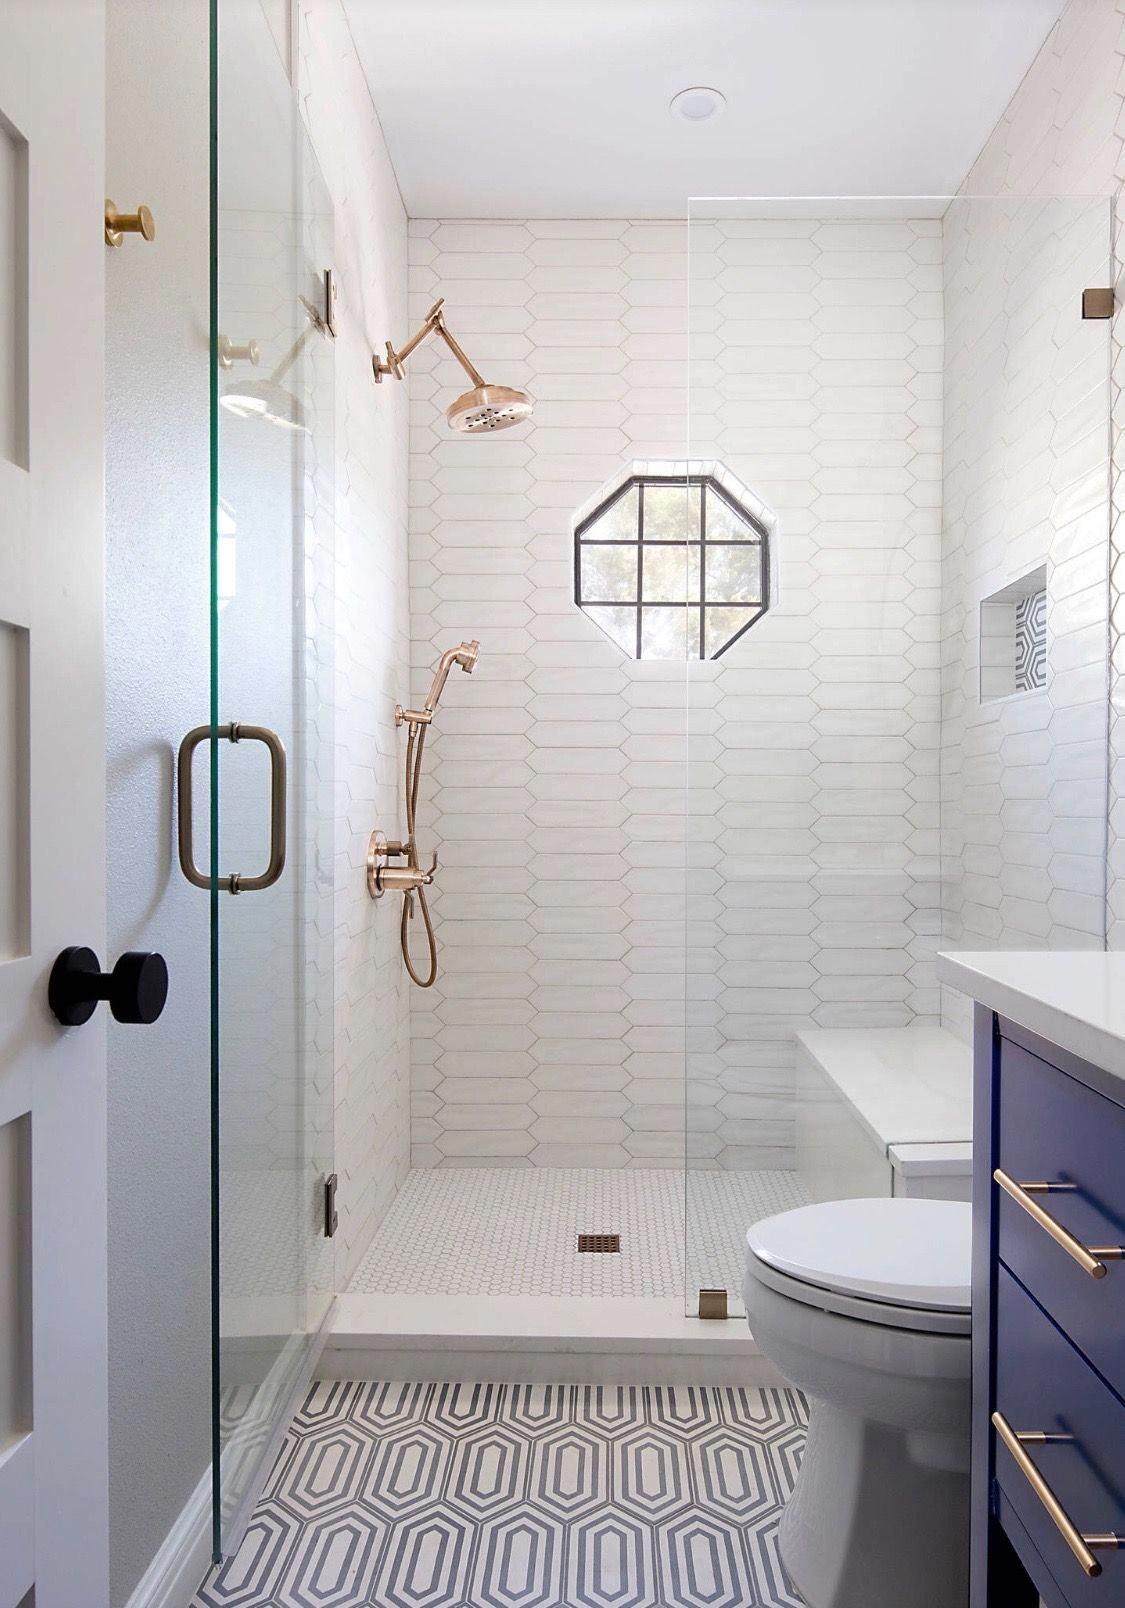 Bathroom Ideas Old House Bathroominteriordesignsmallmasterbath Bathroom Design Small Bathroom Design Small Bathroom Makeover